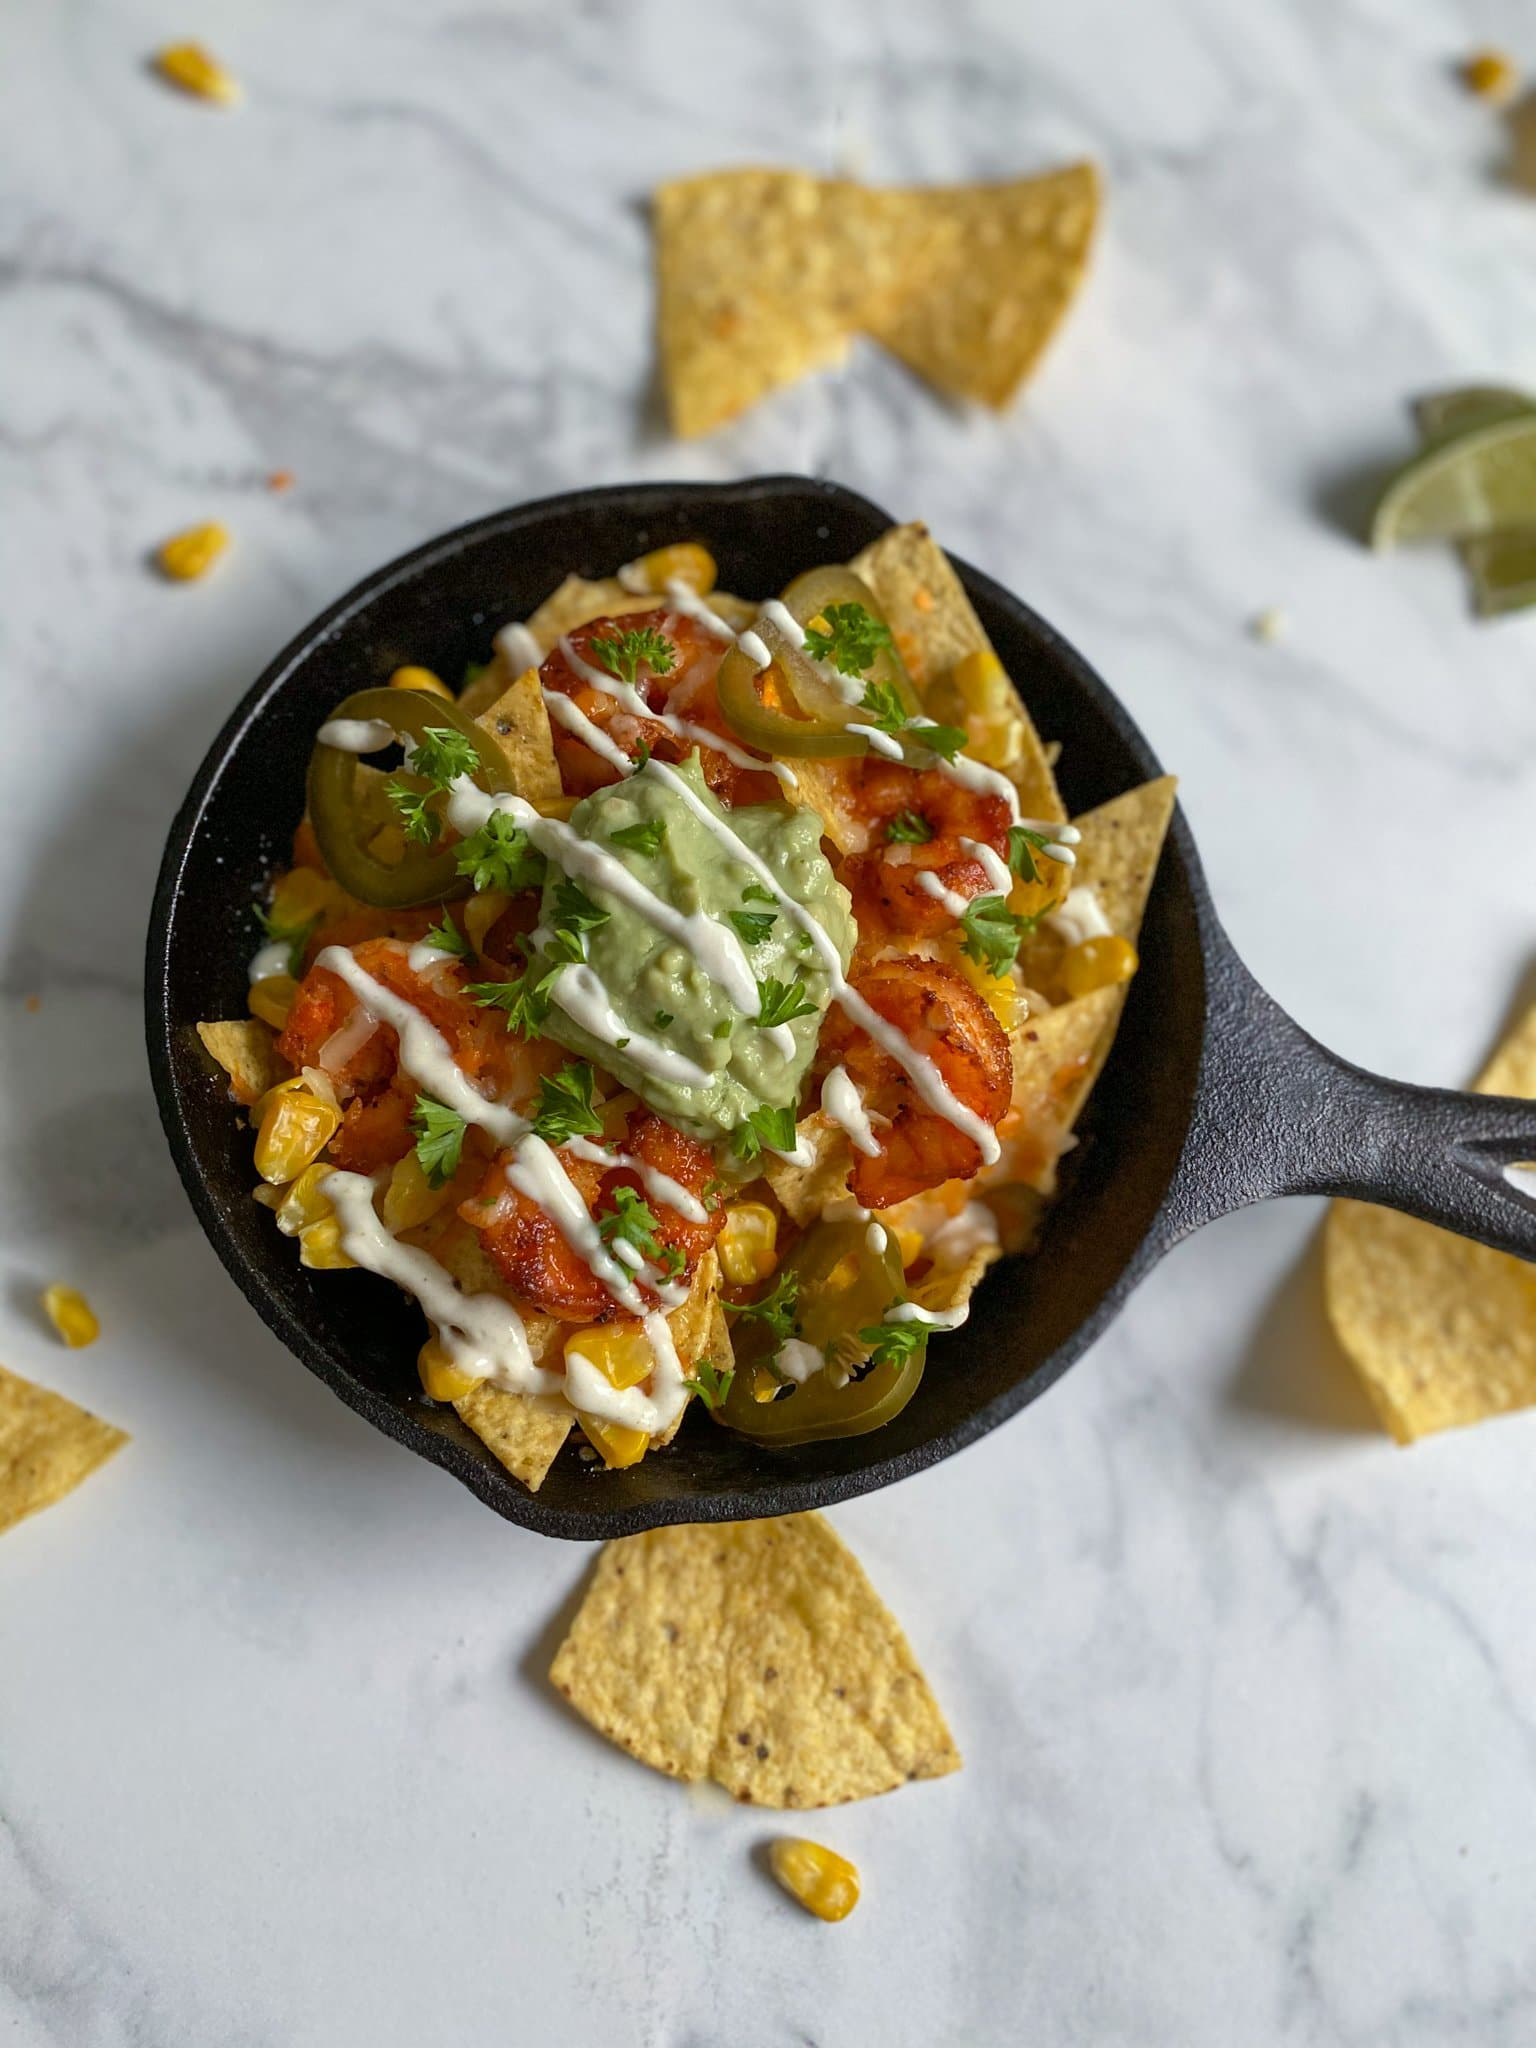 A single cast iron pan filled with honey shrimp nachos and all fixings like sauces, guacamole, corn and pickled jalapenos.